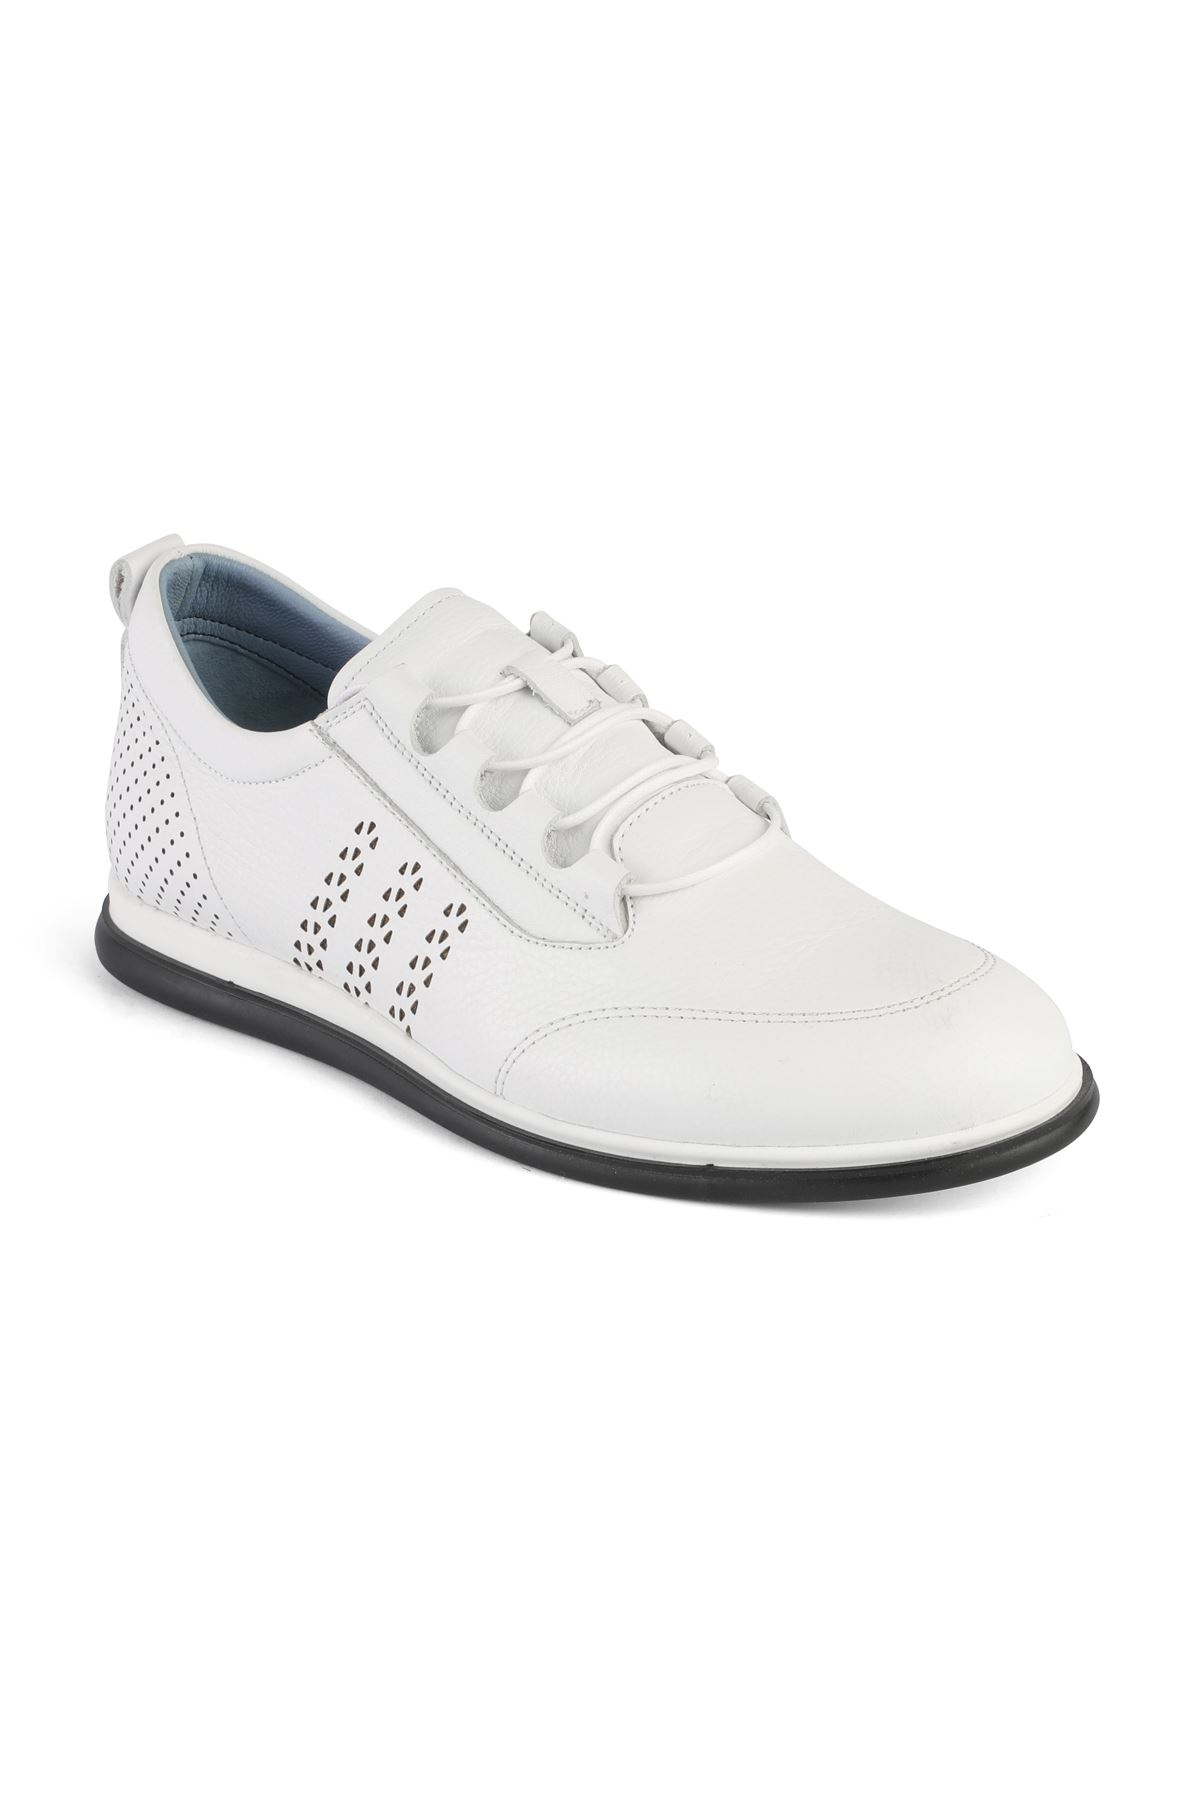 Libero 3274 White Casual Shoes